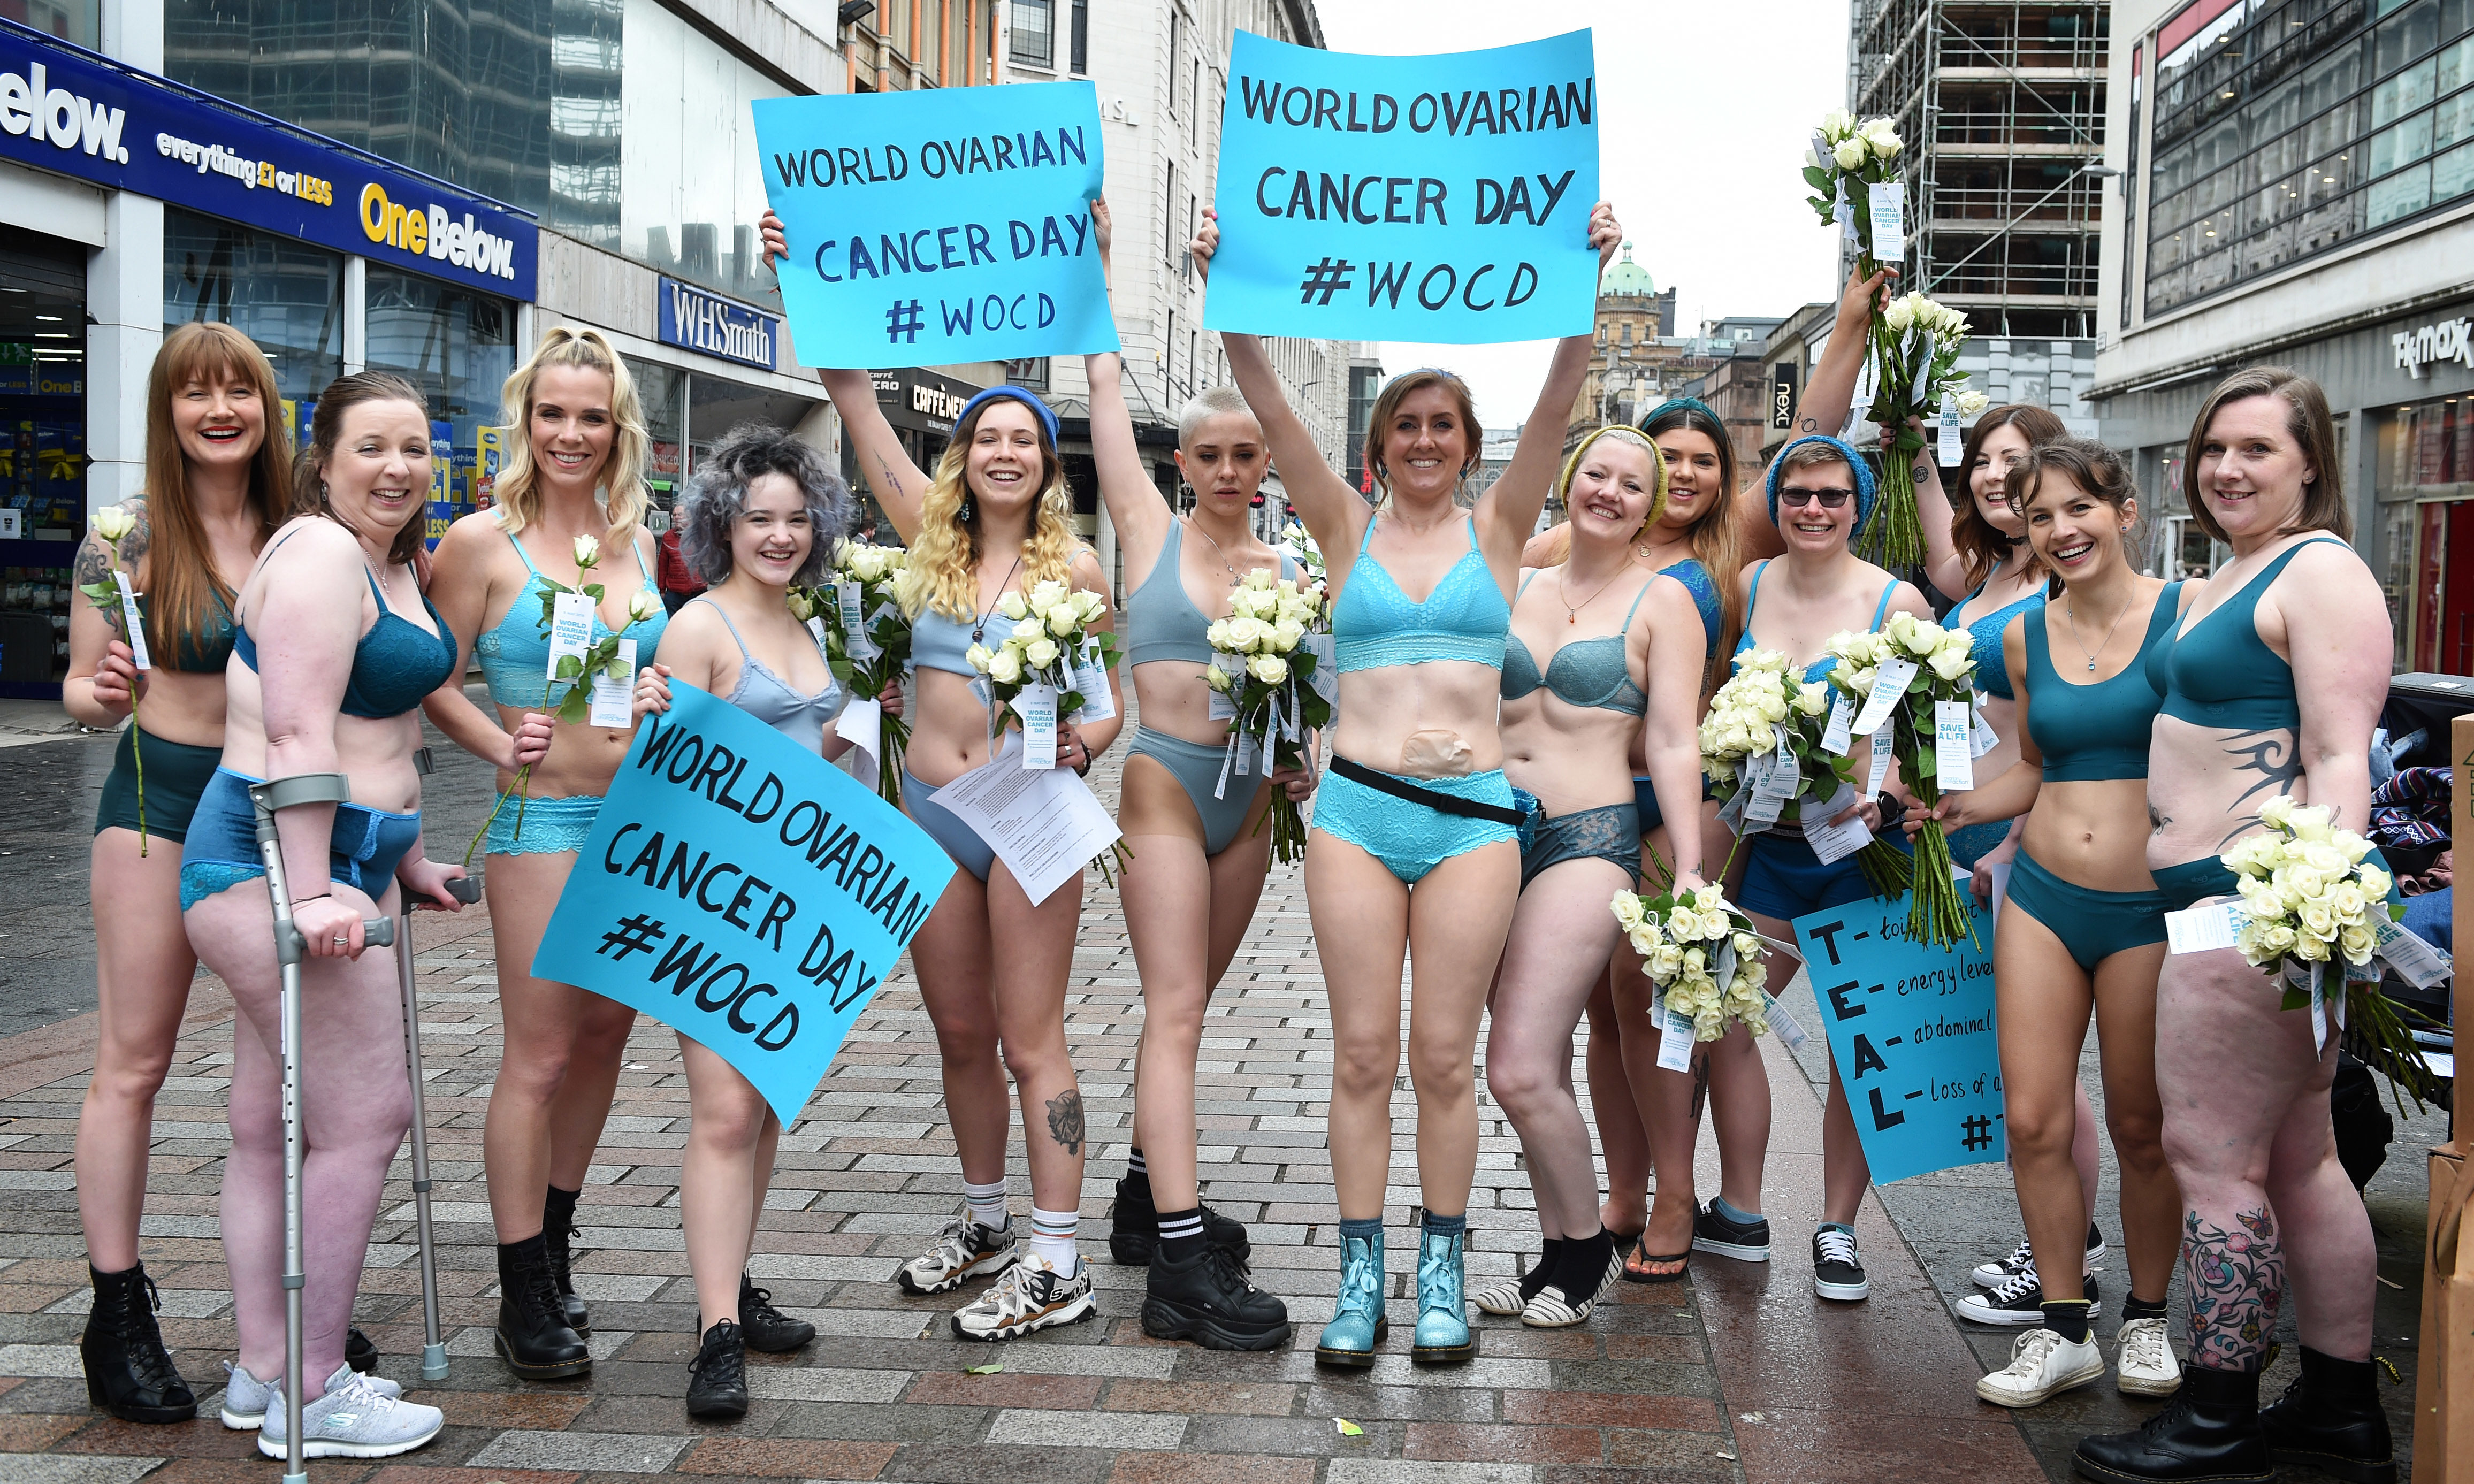 Award winning blogger and author Fi Munro (7th from left)  was joined by her friends, all in teal underwear, to raise awareness of ovarian cancer.